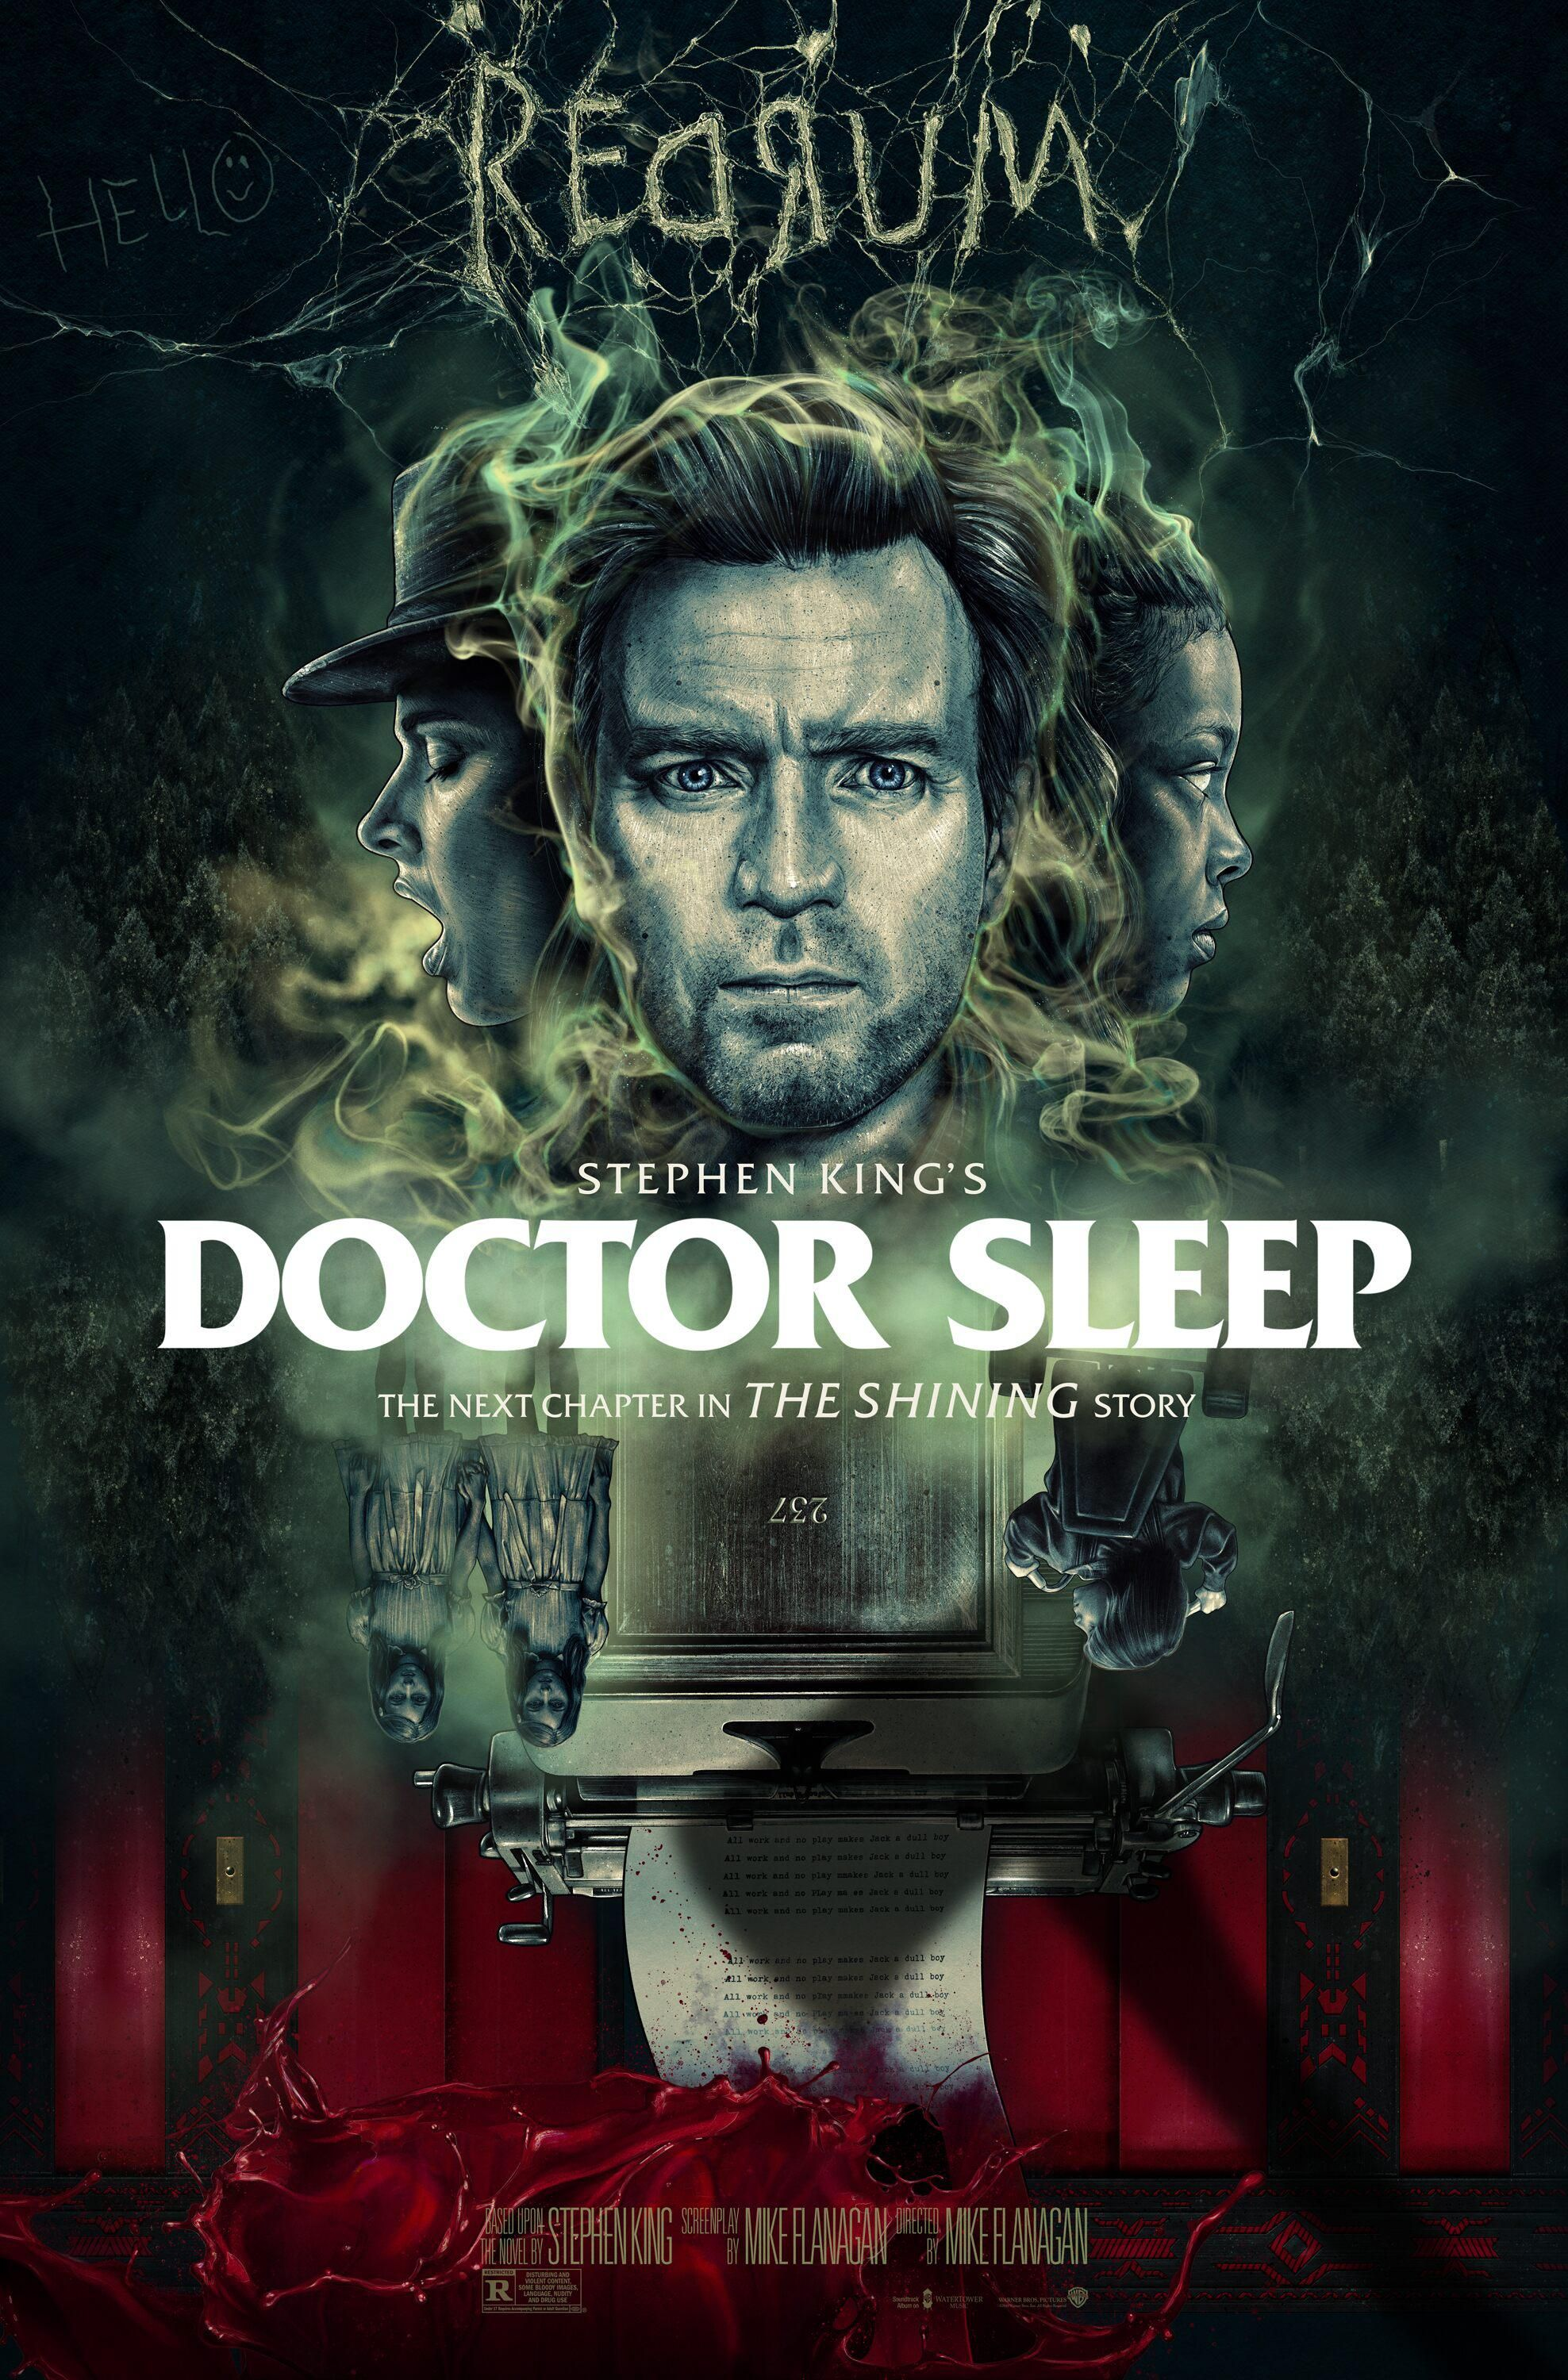 Doctor Sleep 2019 1976 X 3000 Doutor Sono Stephen Kings